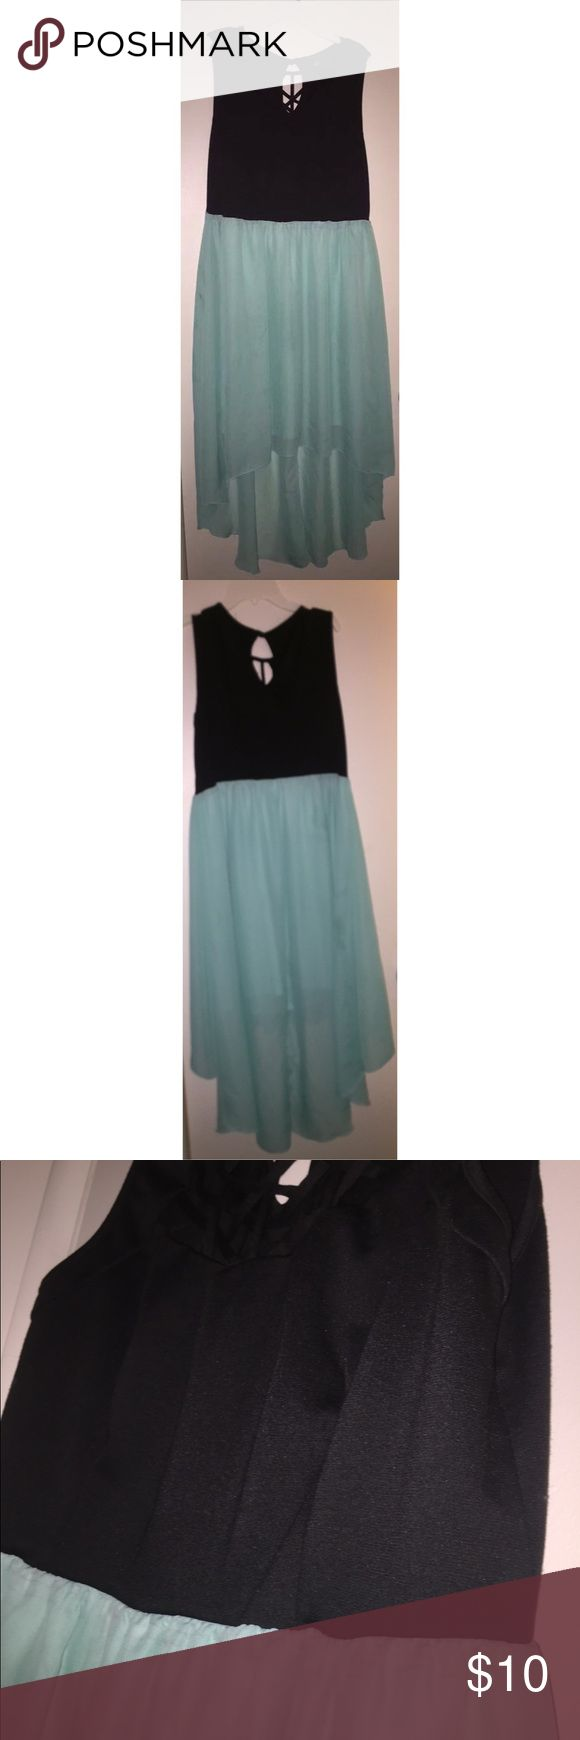 Black and Mint Green High Low Dress from Deb Shops Black and Mint green high low sleeveless dress size 3x from Deb Shops. Worn only a few times. Looks very nice on! Deb Dresses High Low